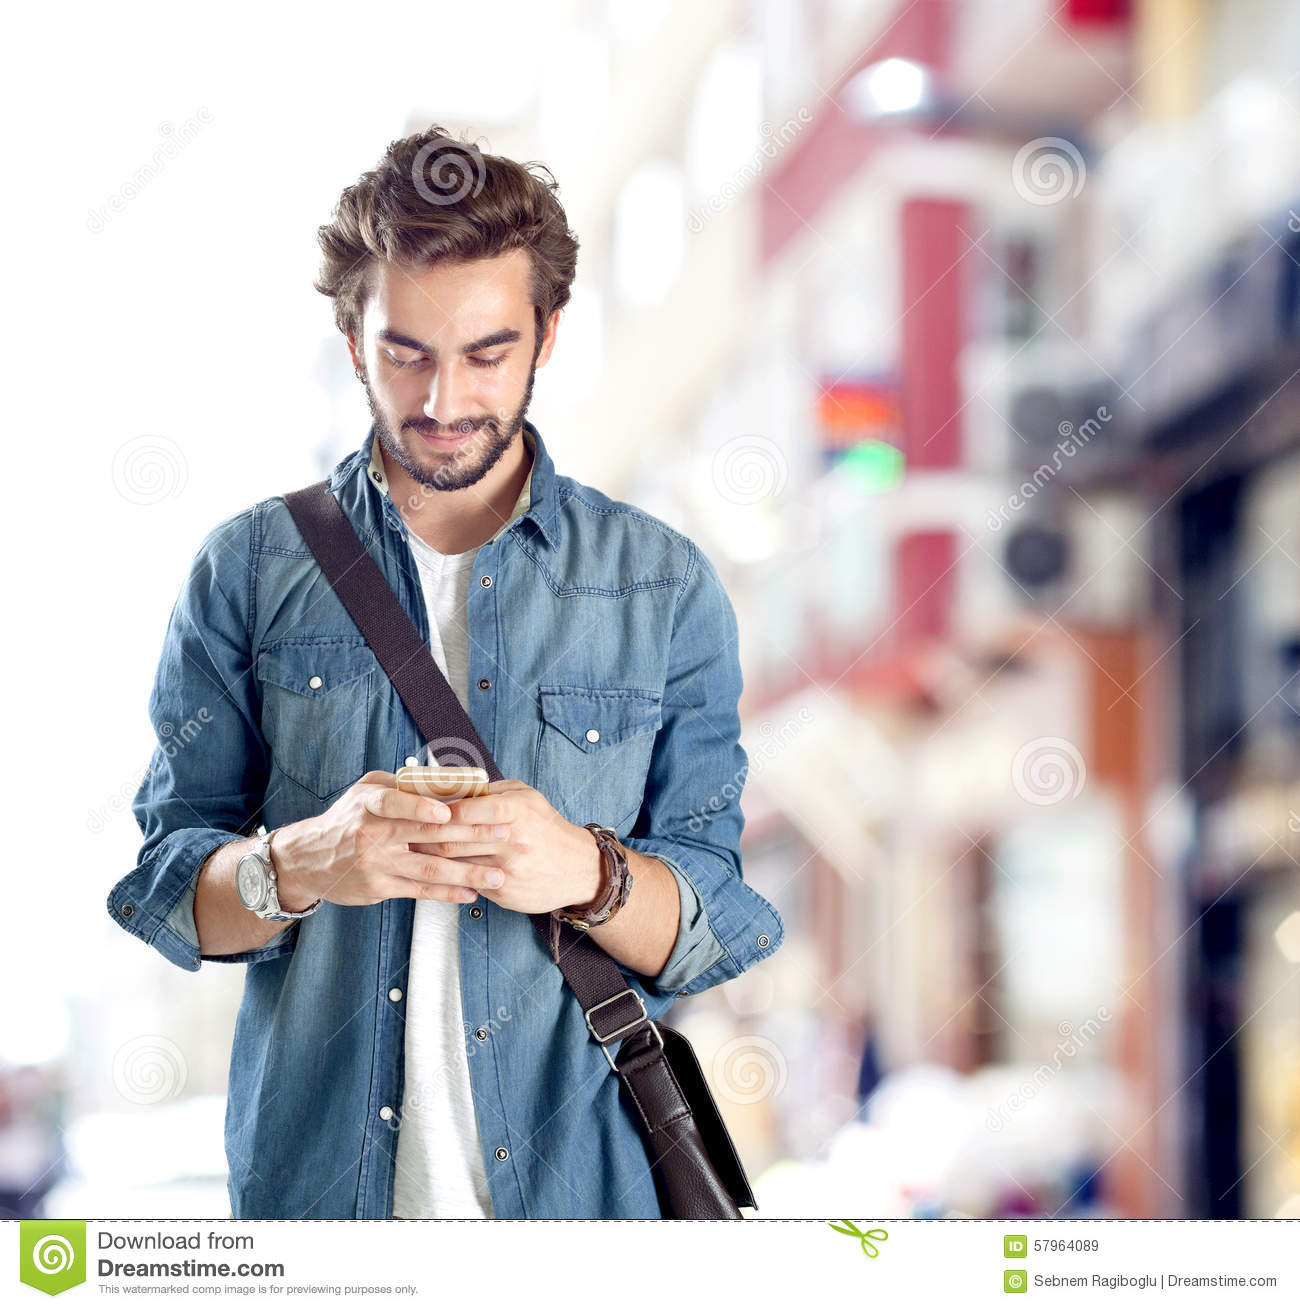 Man On Cell Phone : Young man using mobile phone royalty free stock